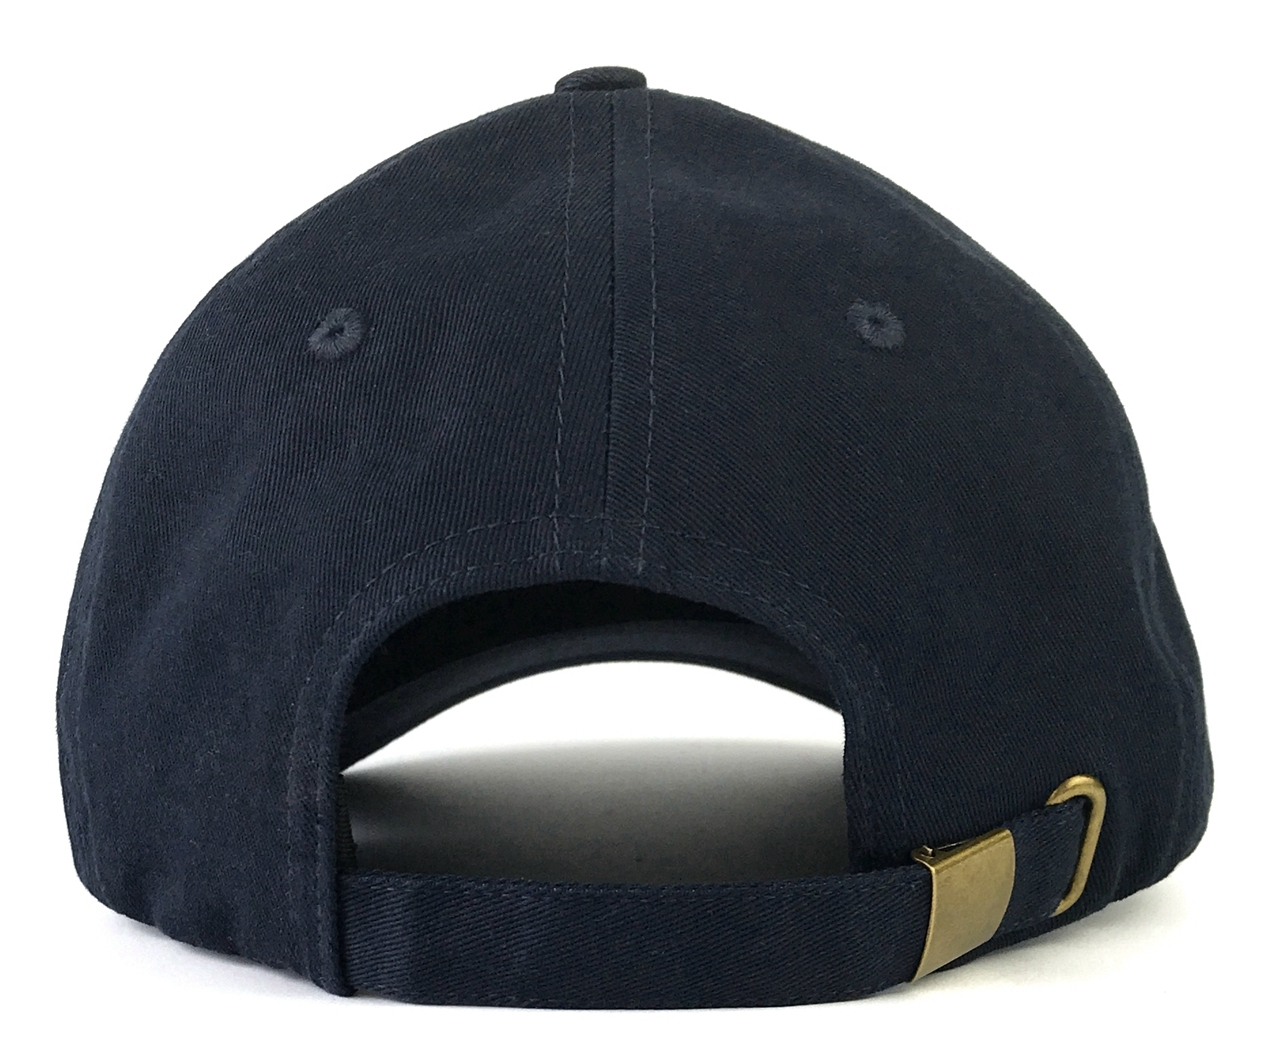 Custom washed fabric cotton with rip baseball cap hat